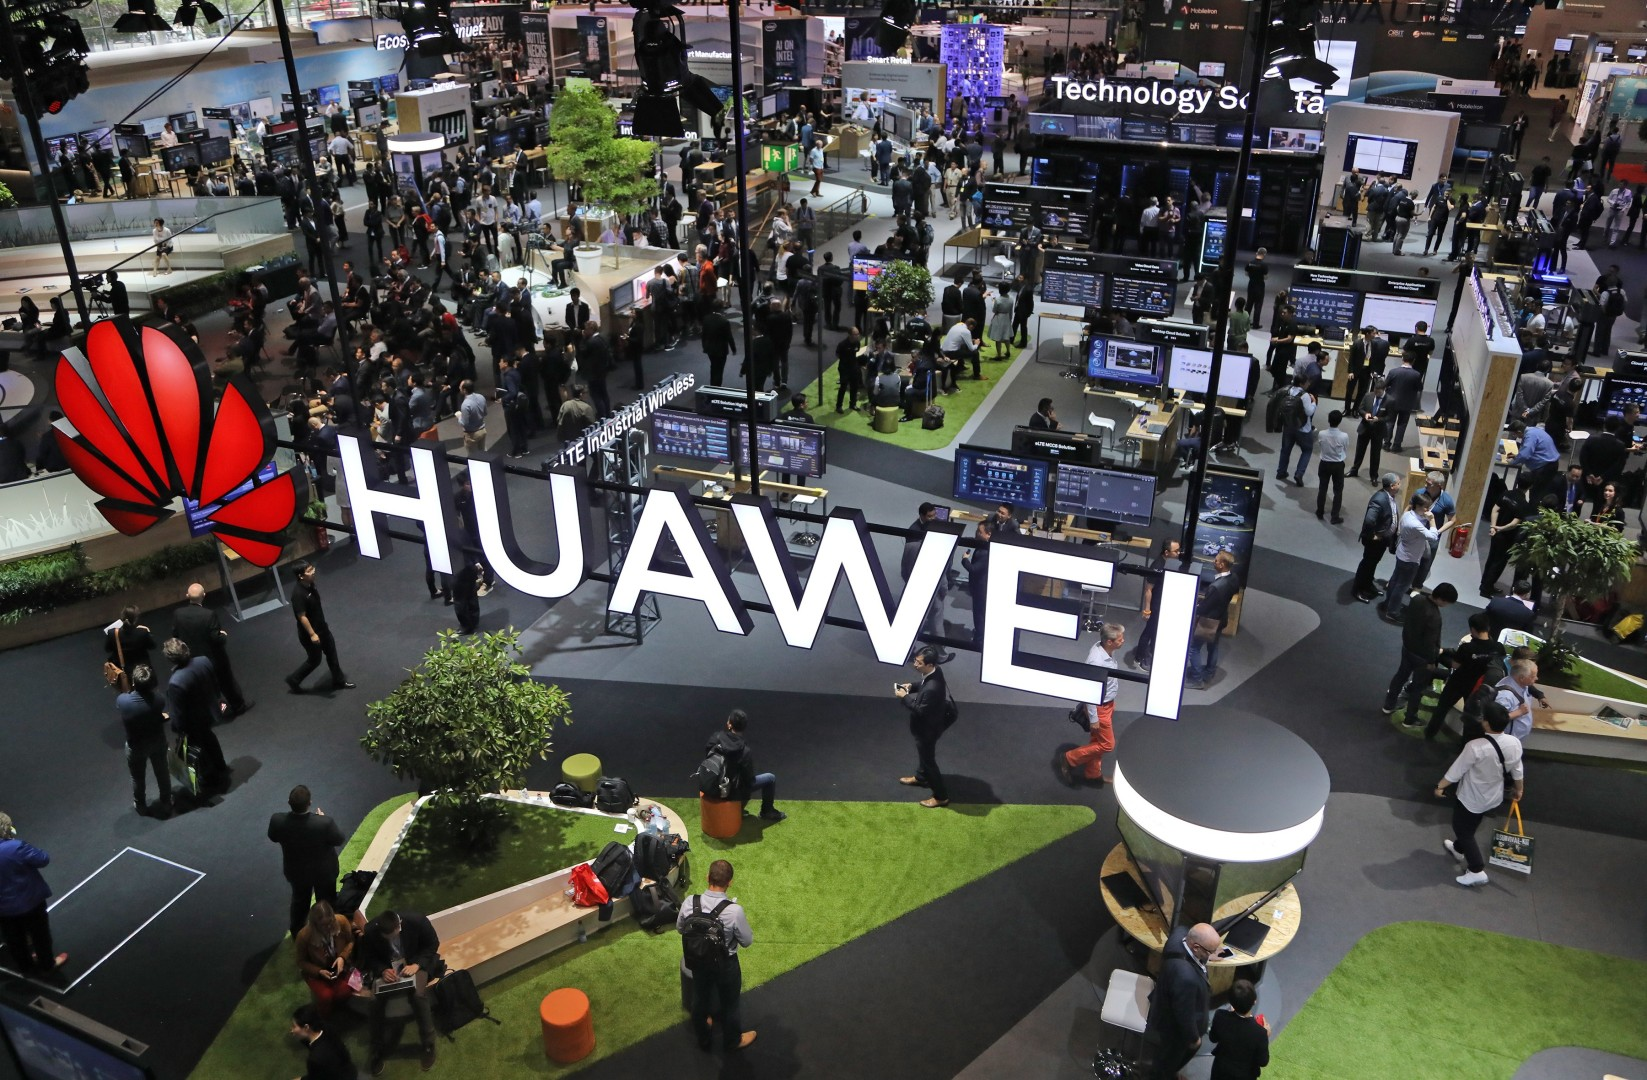 Huawei founder stresses trustworthiness as top priority in letter to